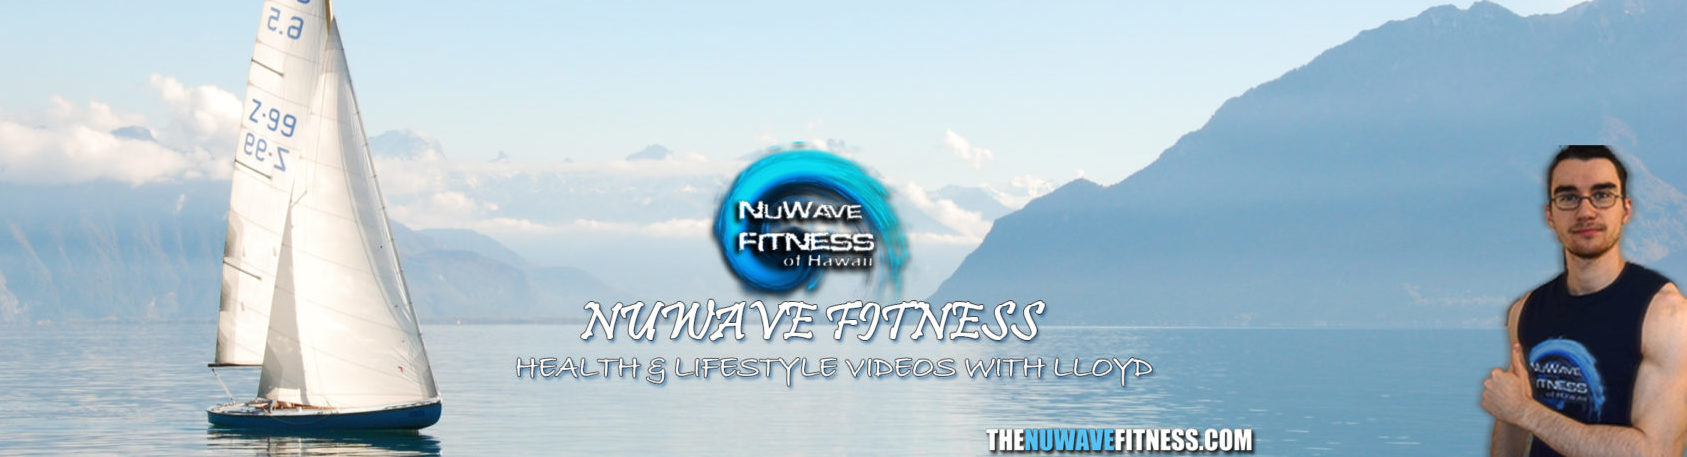 nSuns 5/3/1 Workout Program Review – Nuwave Fitness